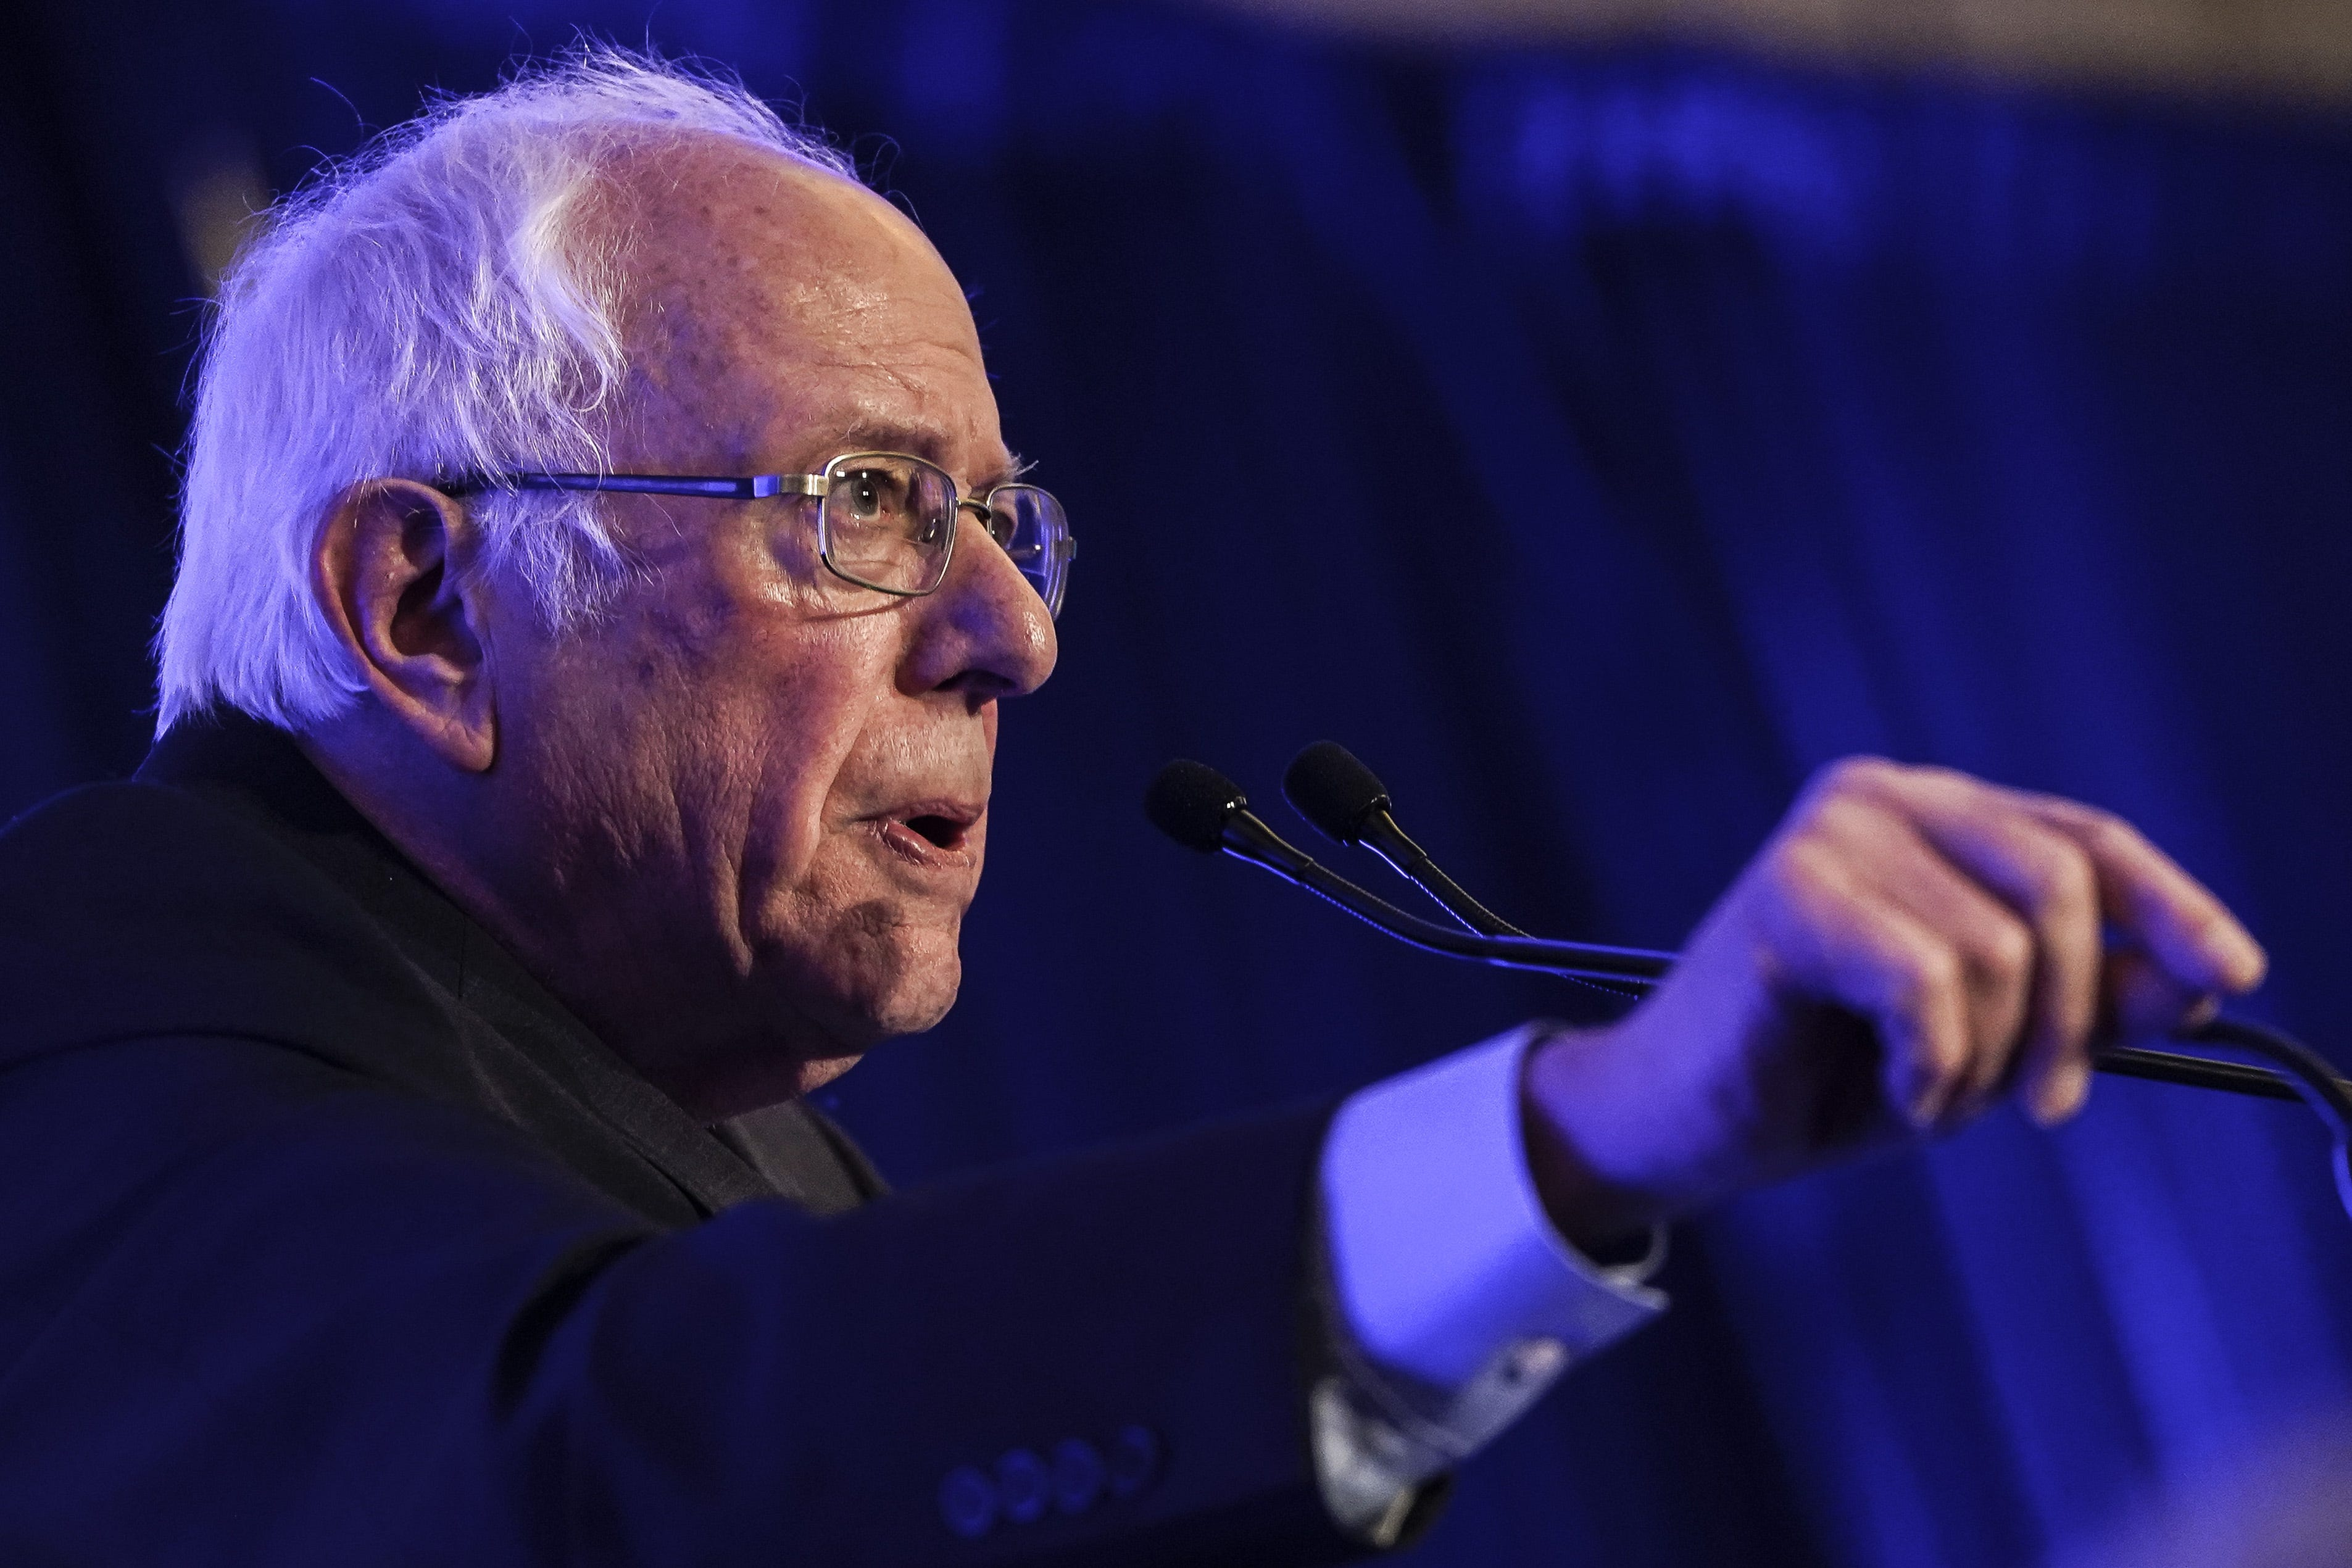 Florida lawsuit: Don t count Bernie Sanders  primary votes, he s  clearly not a Democrat